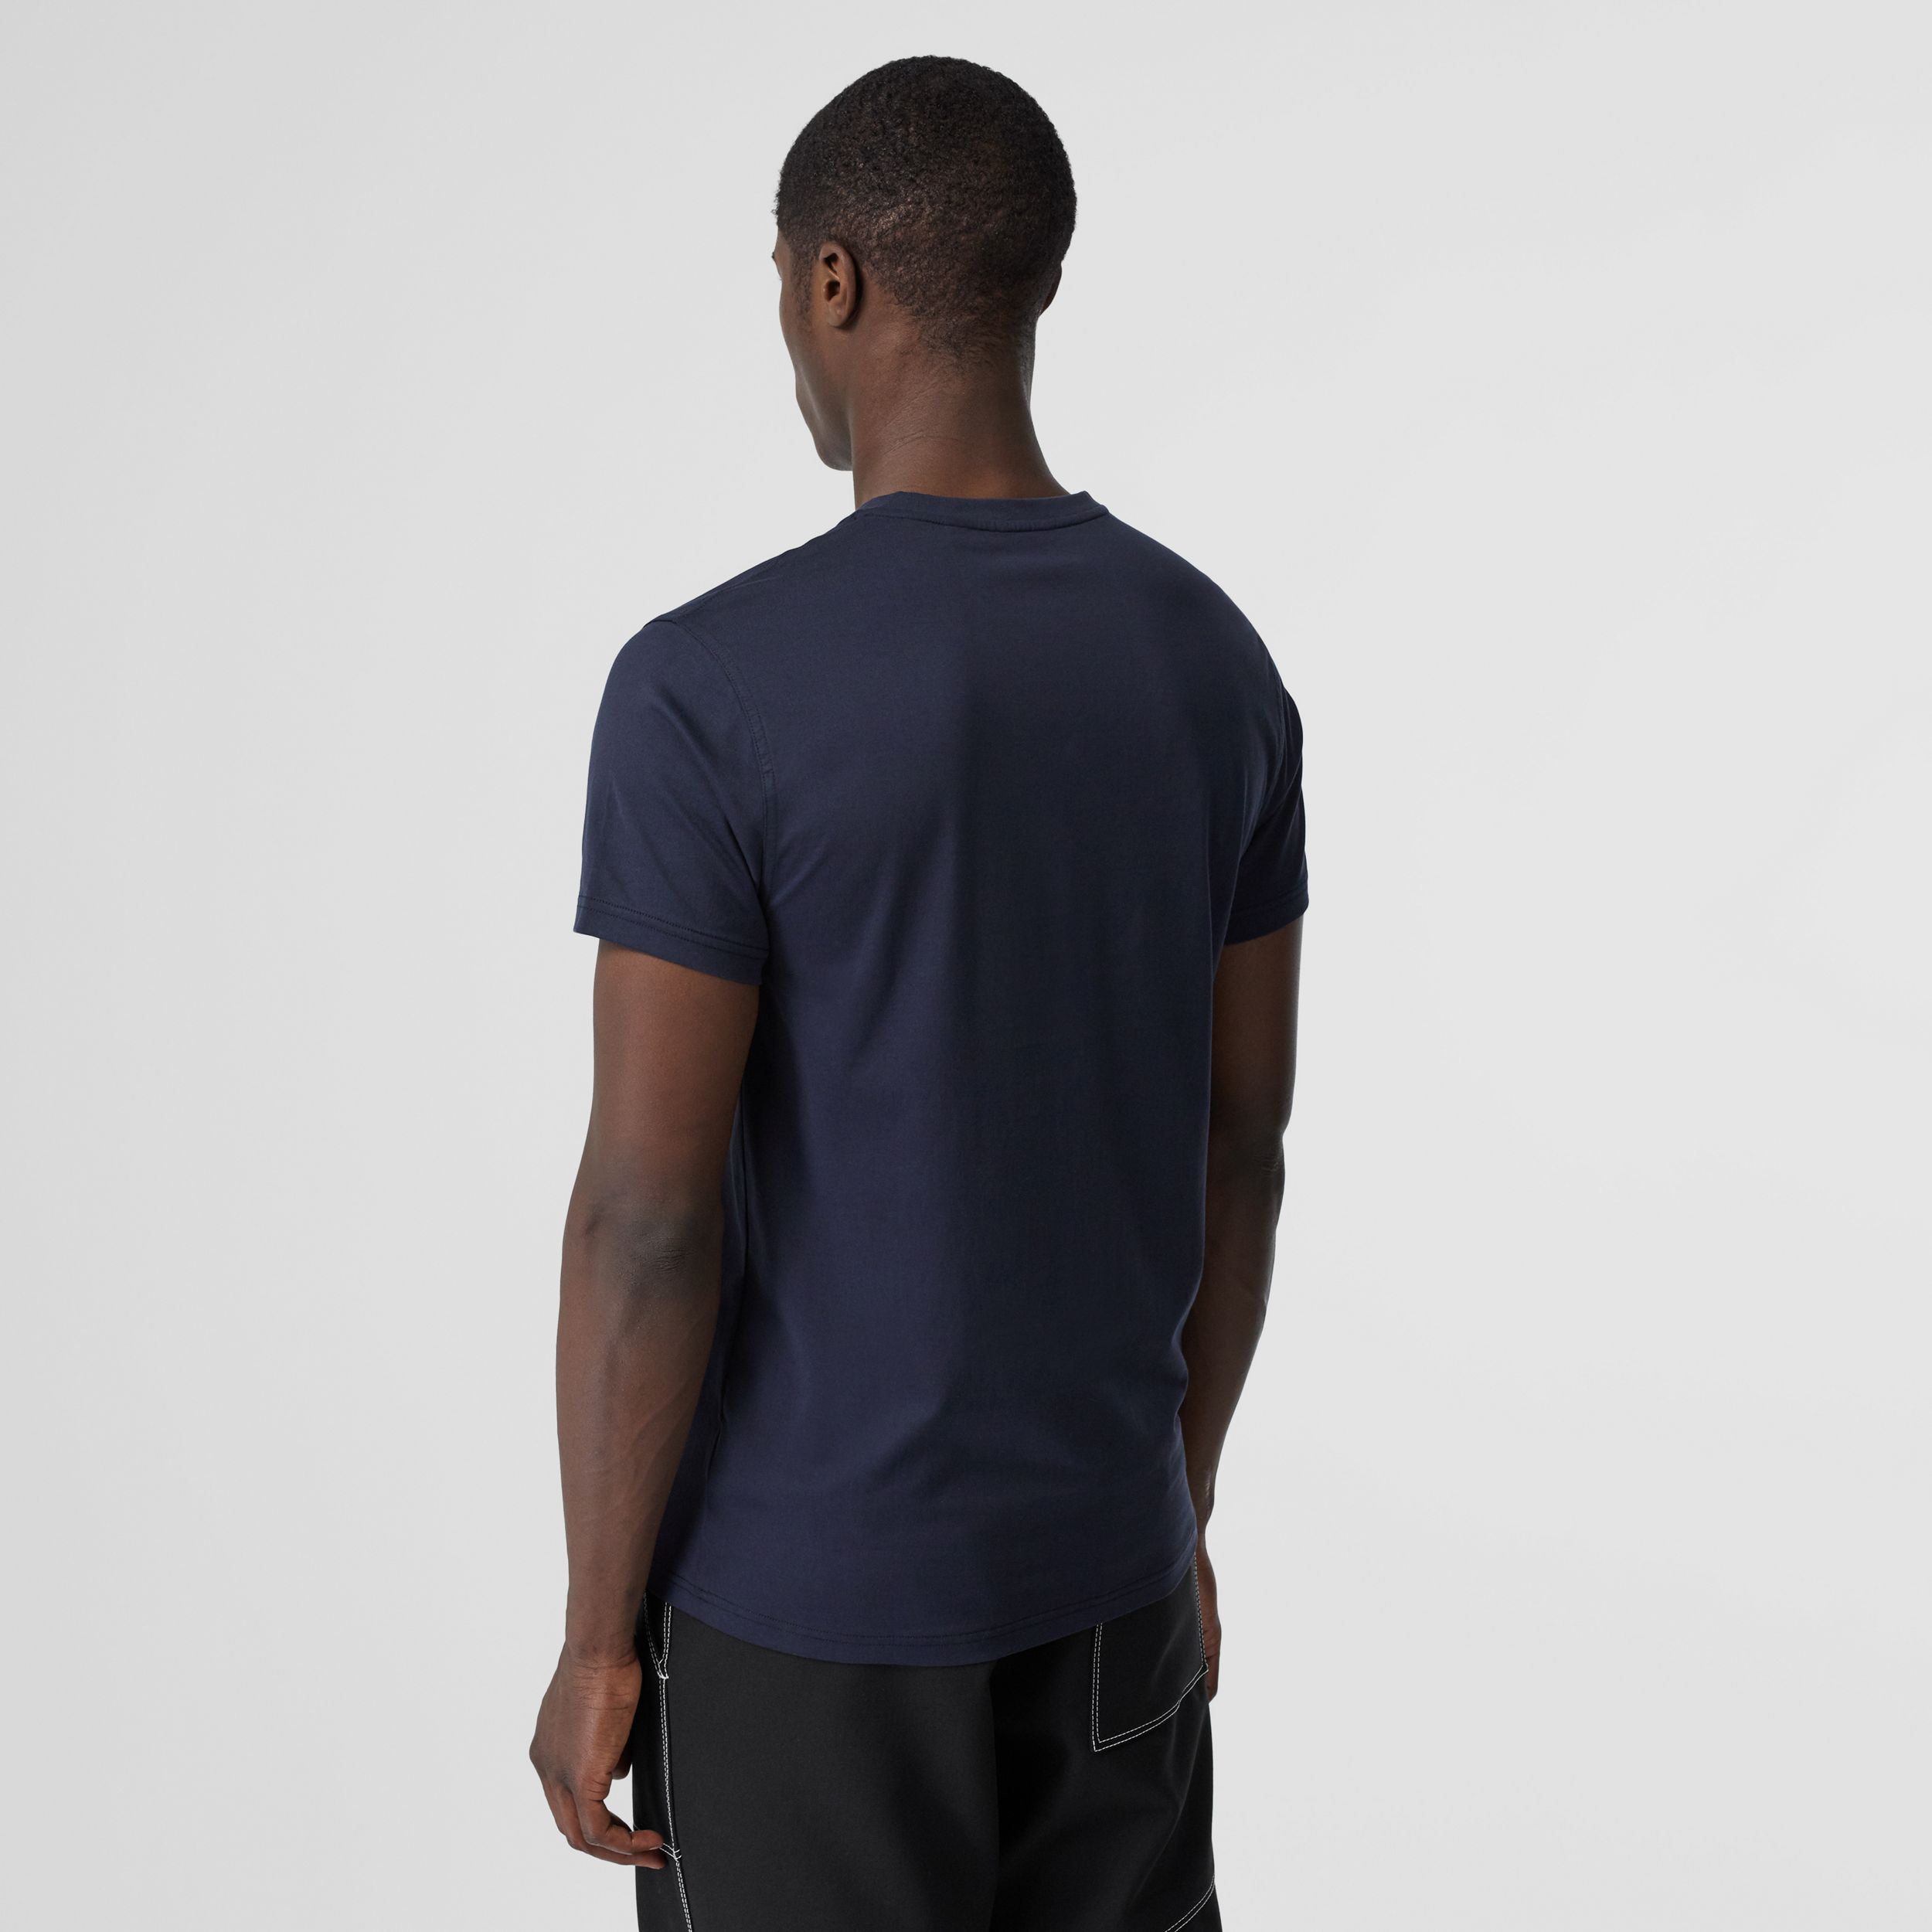 Monogram Motif Cotton V-neck T-shirt in Navy - Men | Burberry - 3